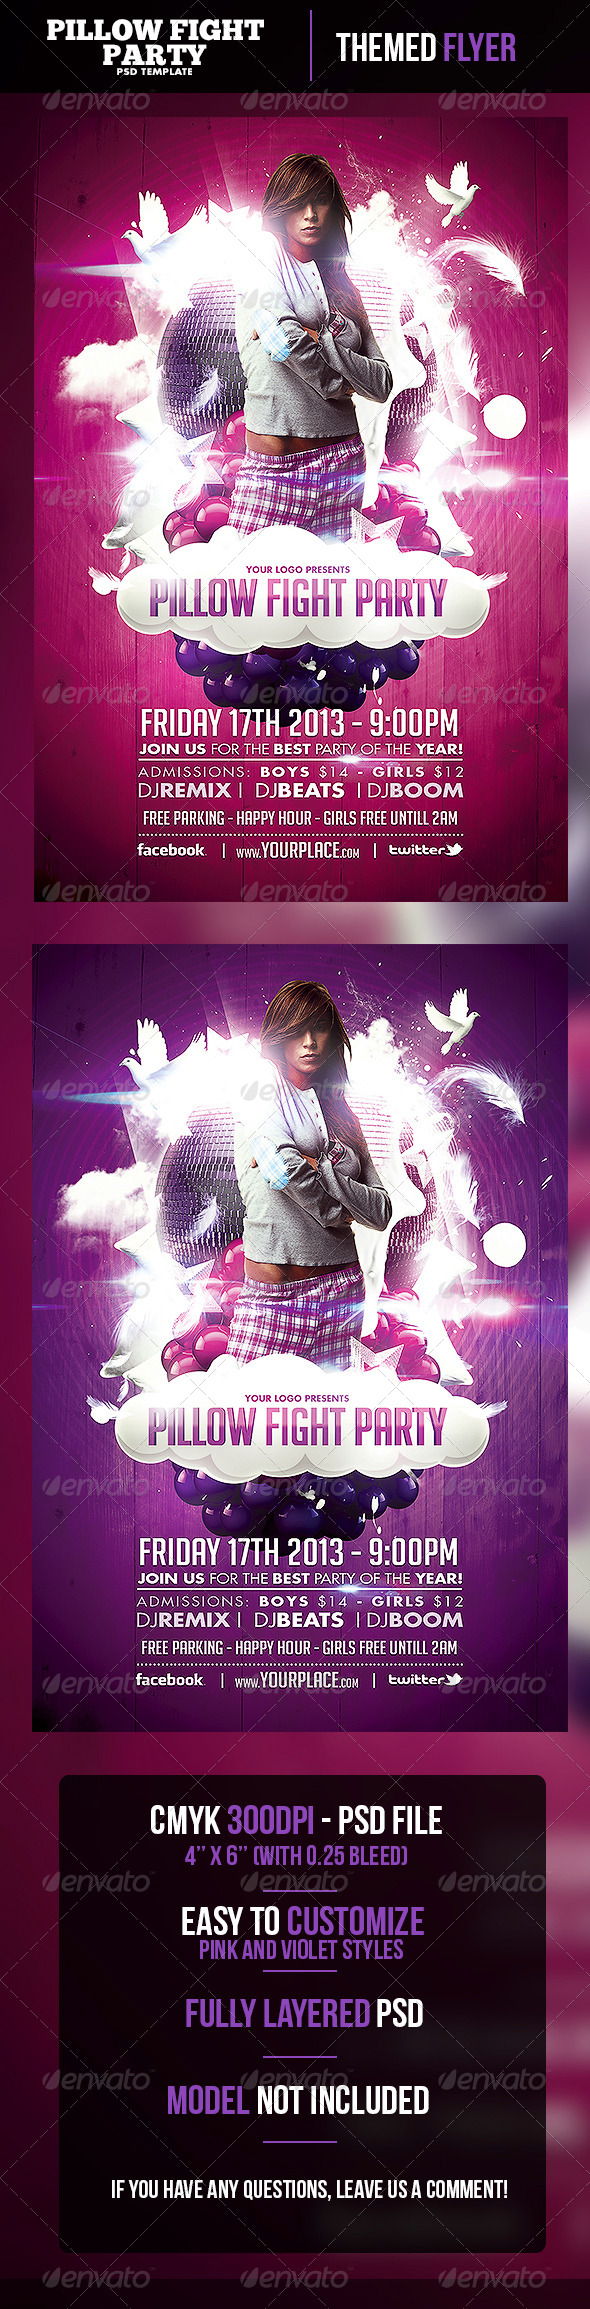 GraphicRiver Pillow Fight Party Flyer Template 4659941